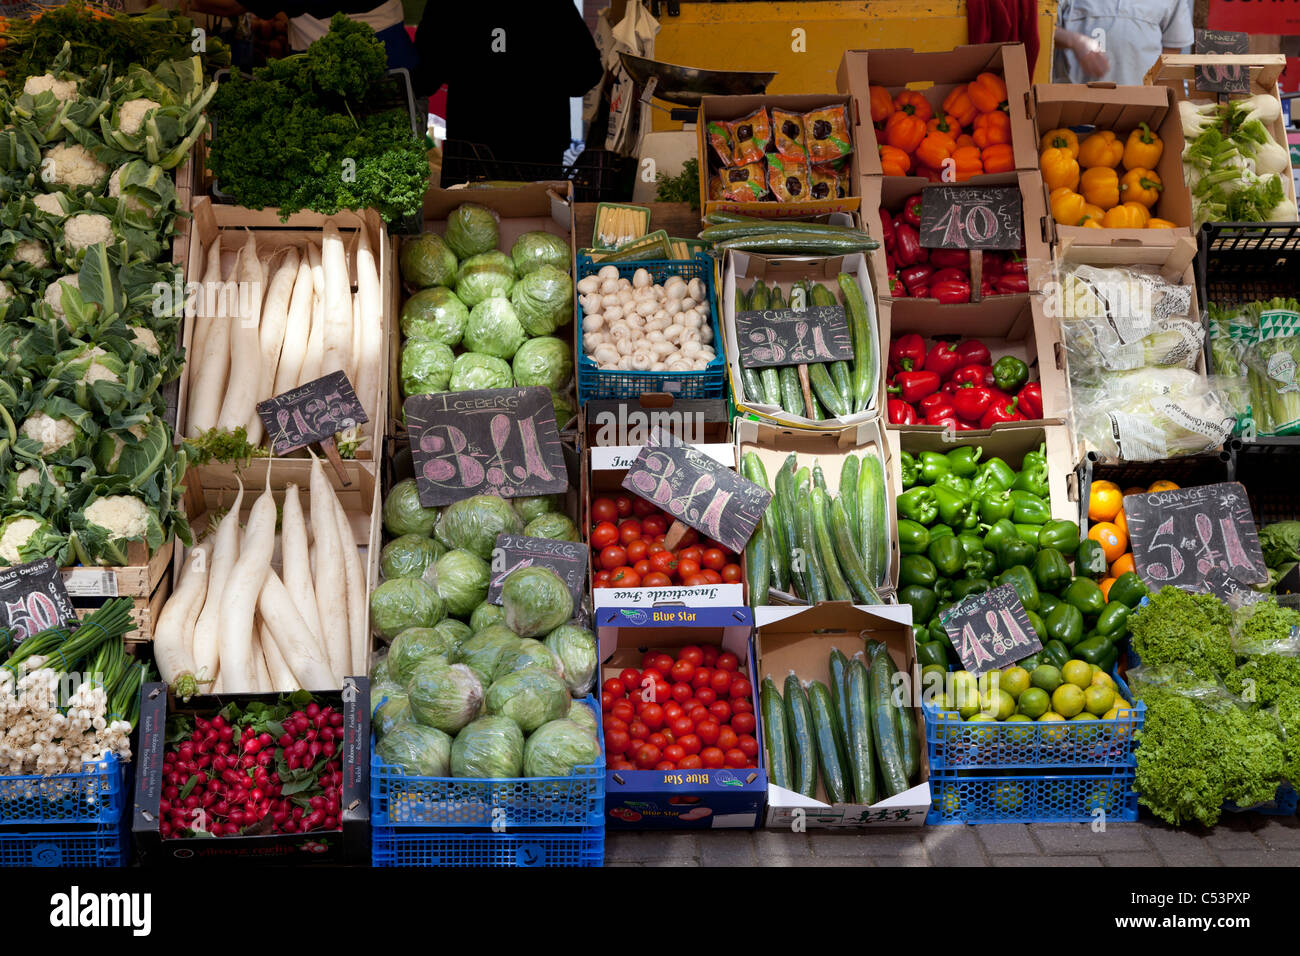 boxes of vegetables and salad veg on market stall - Stock Image